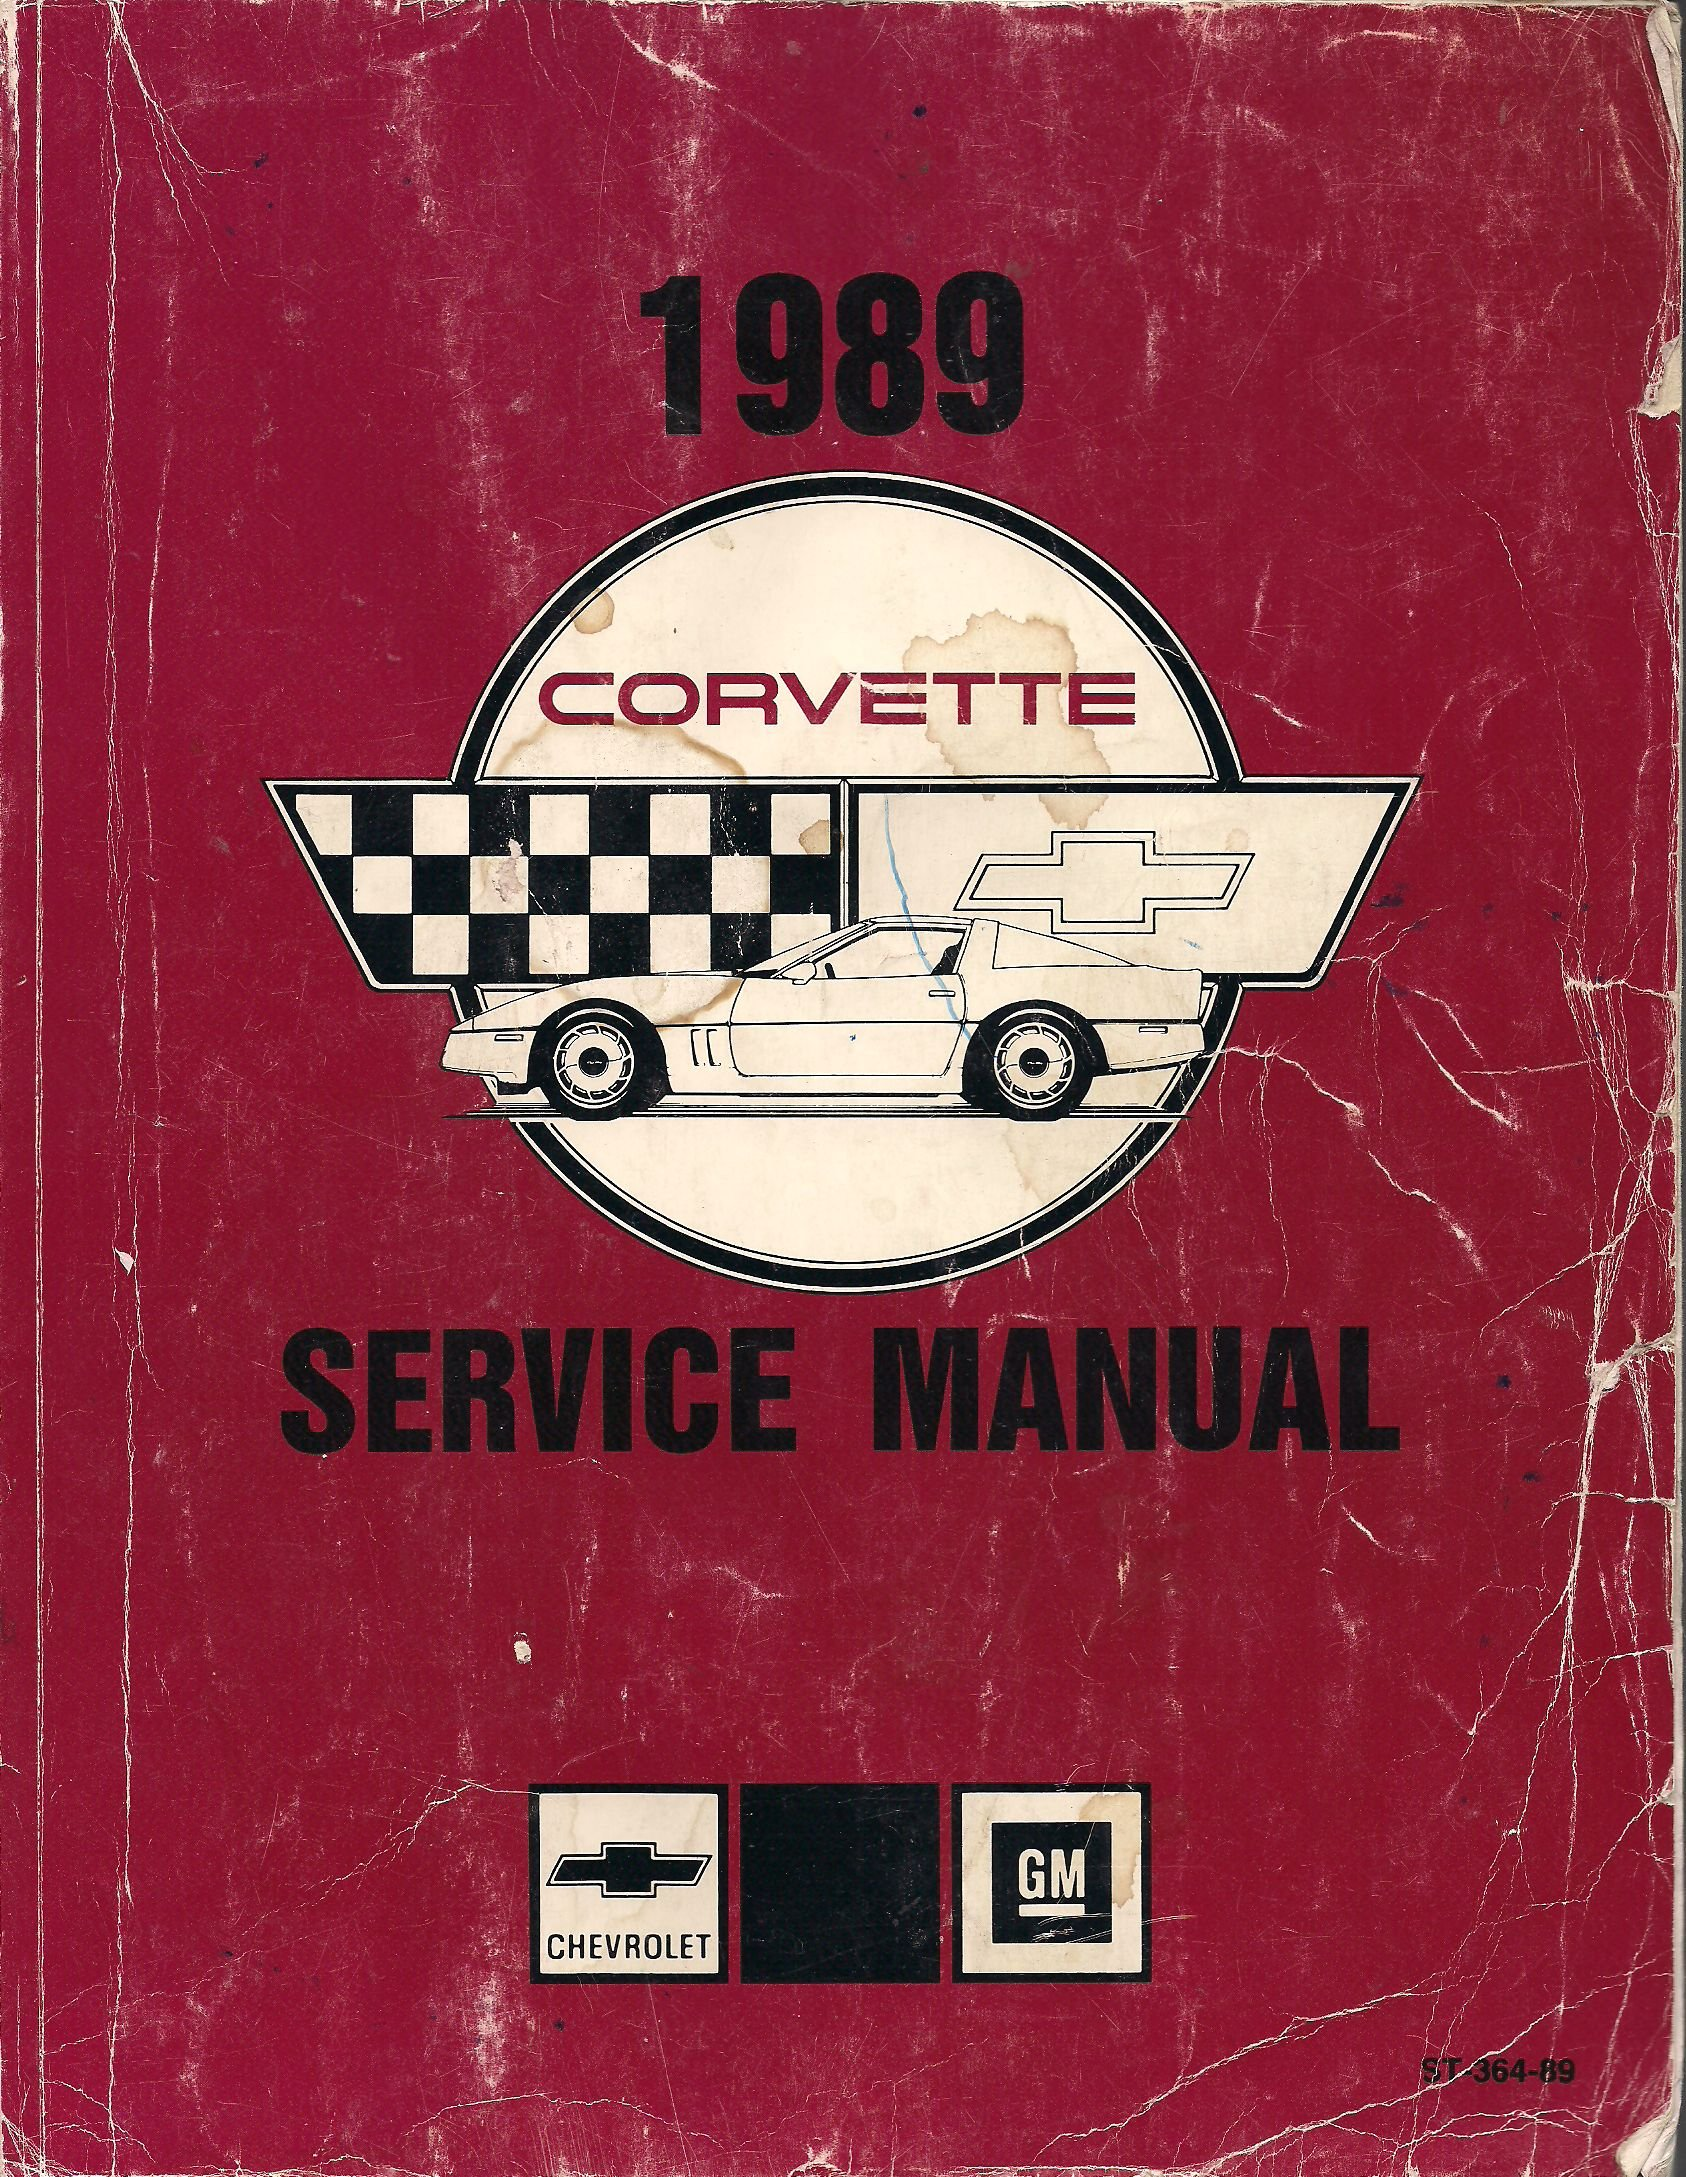 1989 Corvette Service Manual: Chevrolet, b/w Illustrations: Amazon.com:  Books